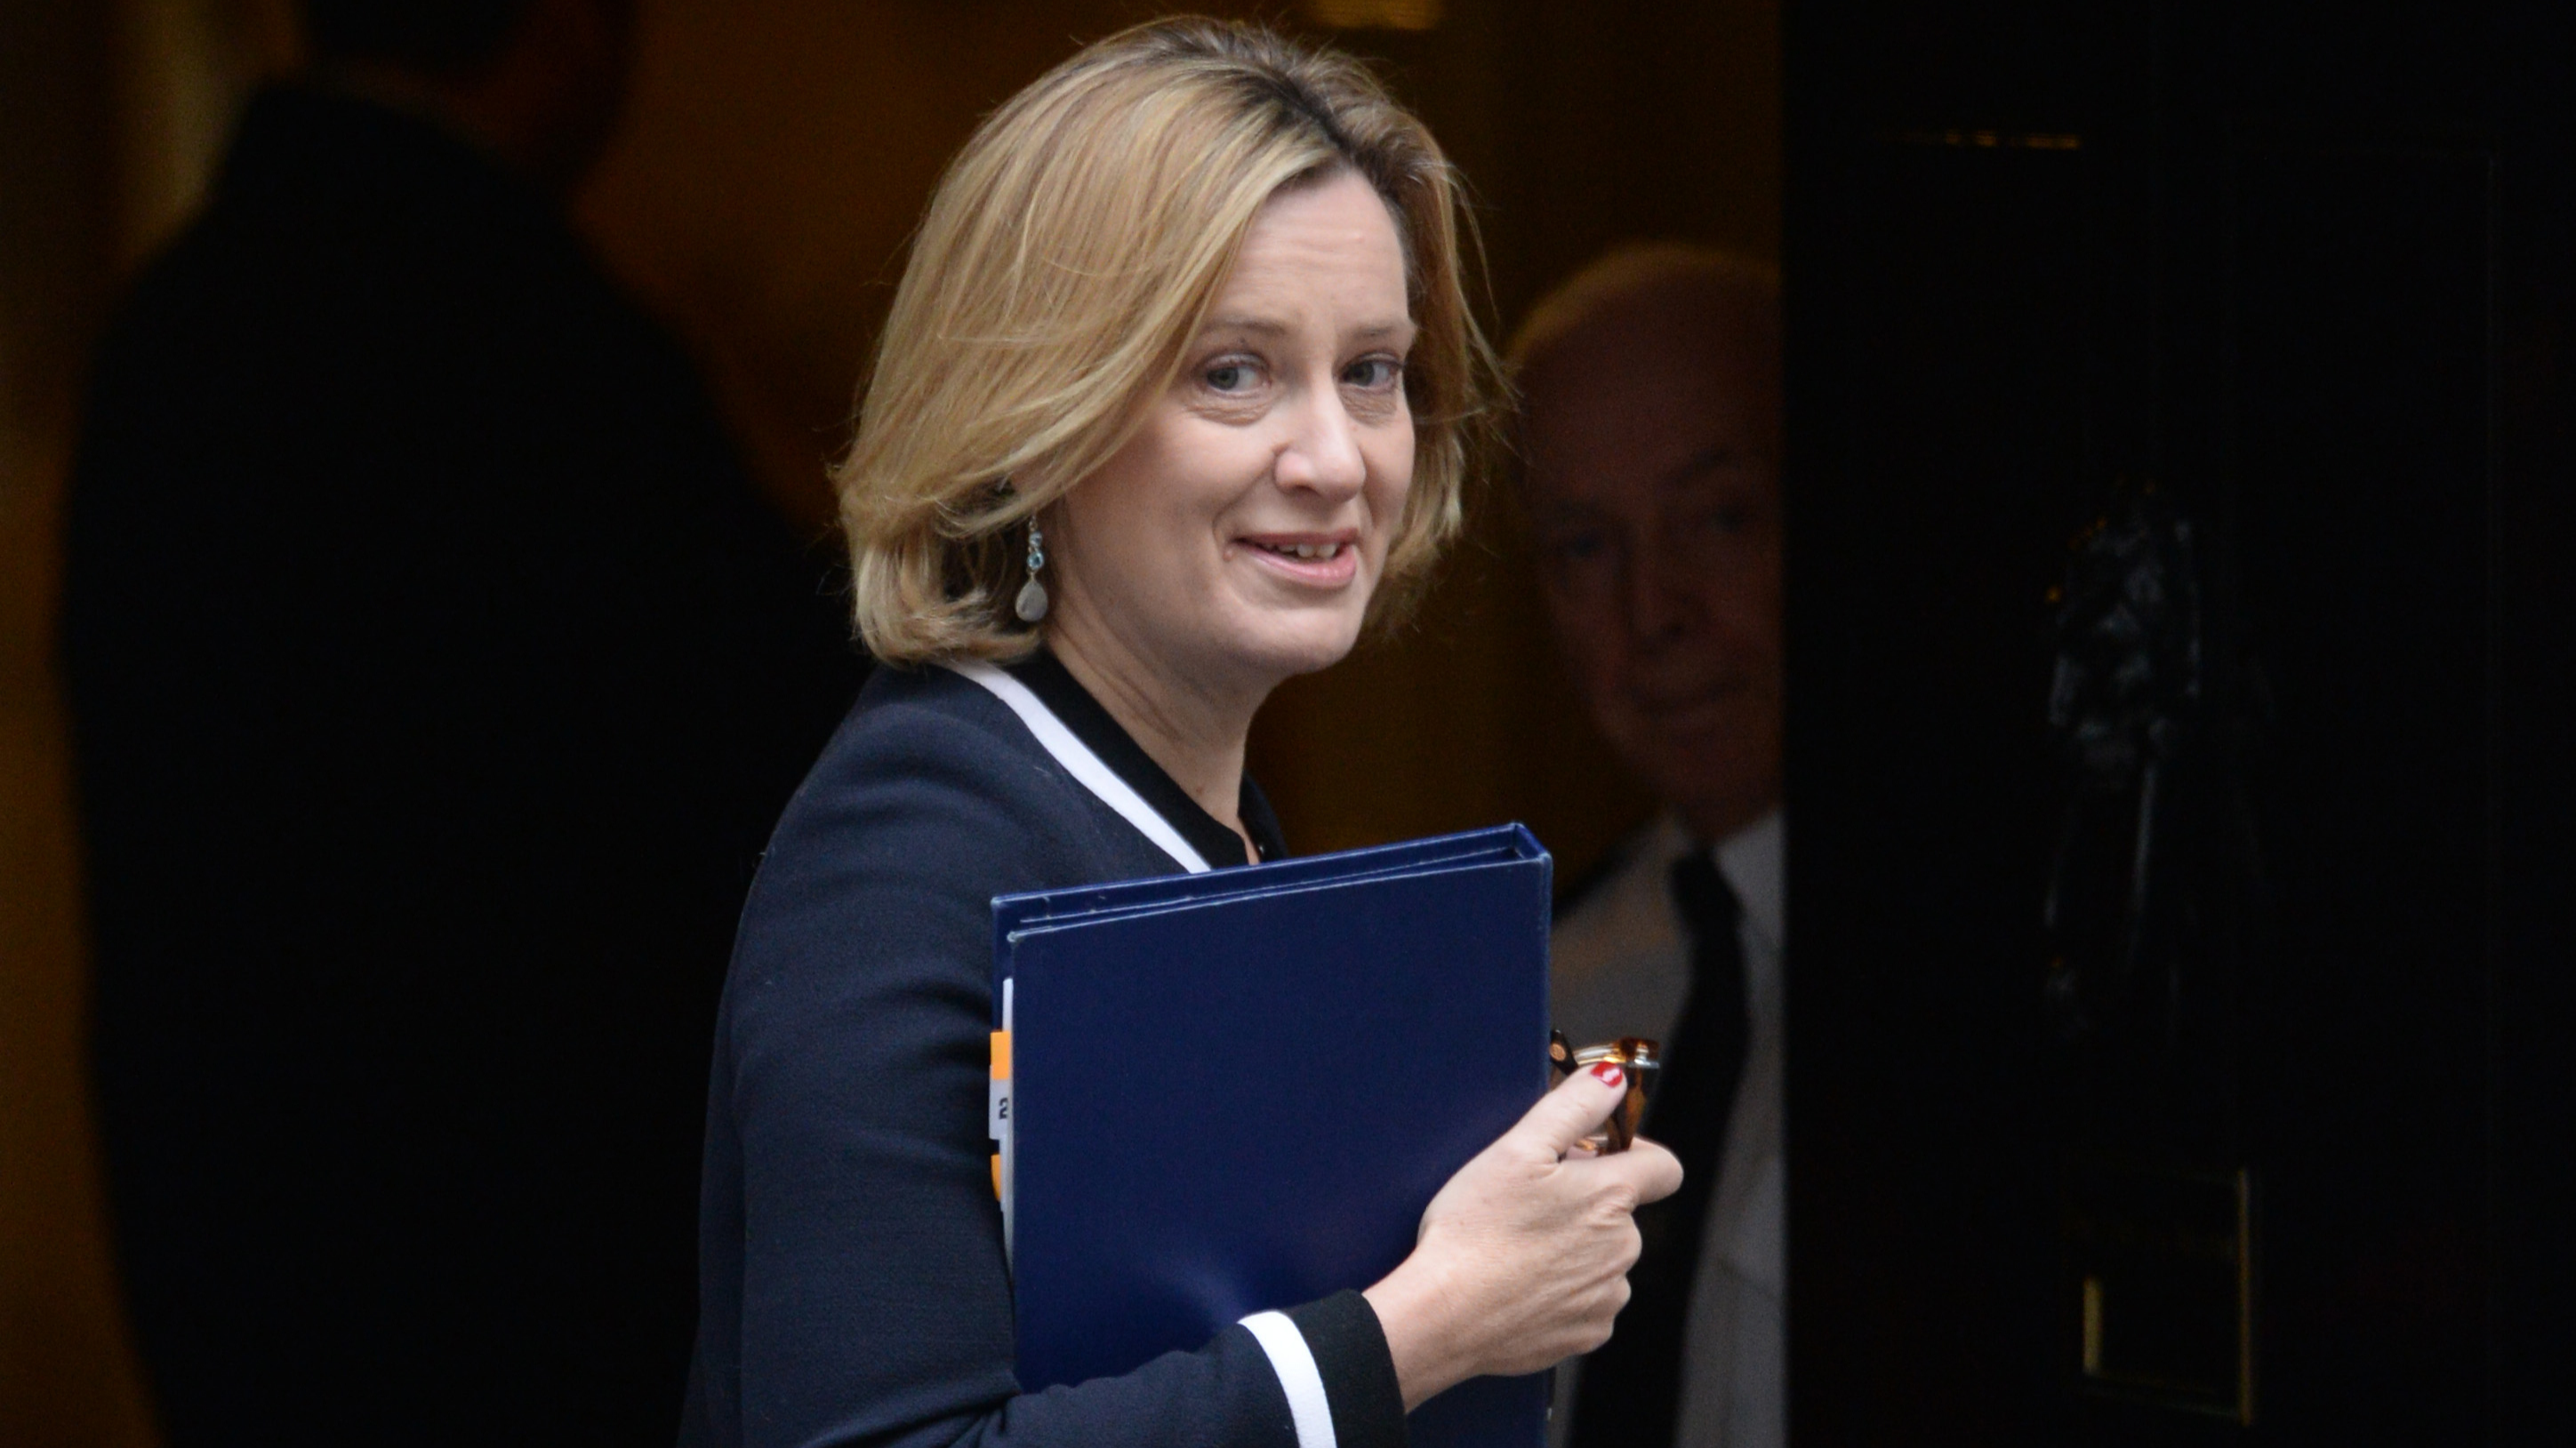 Home Secretary Announces New Consultation To Tackle Domestic Abuse